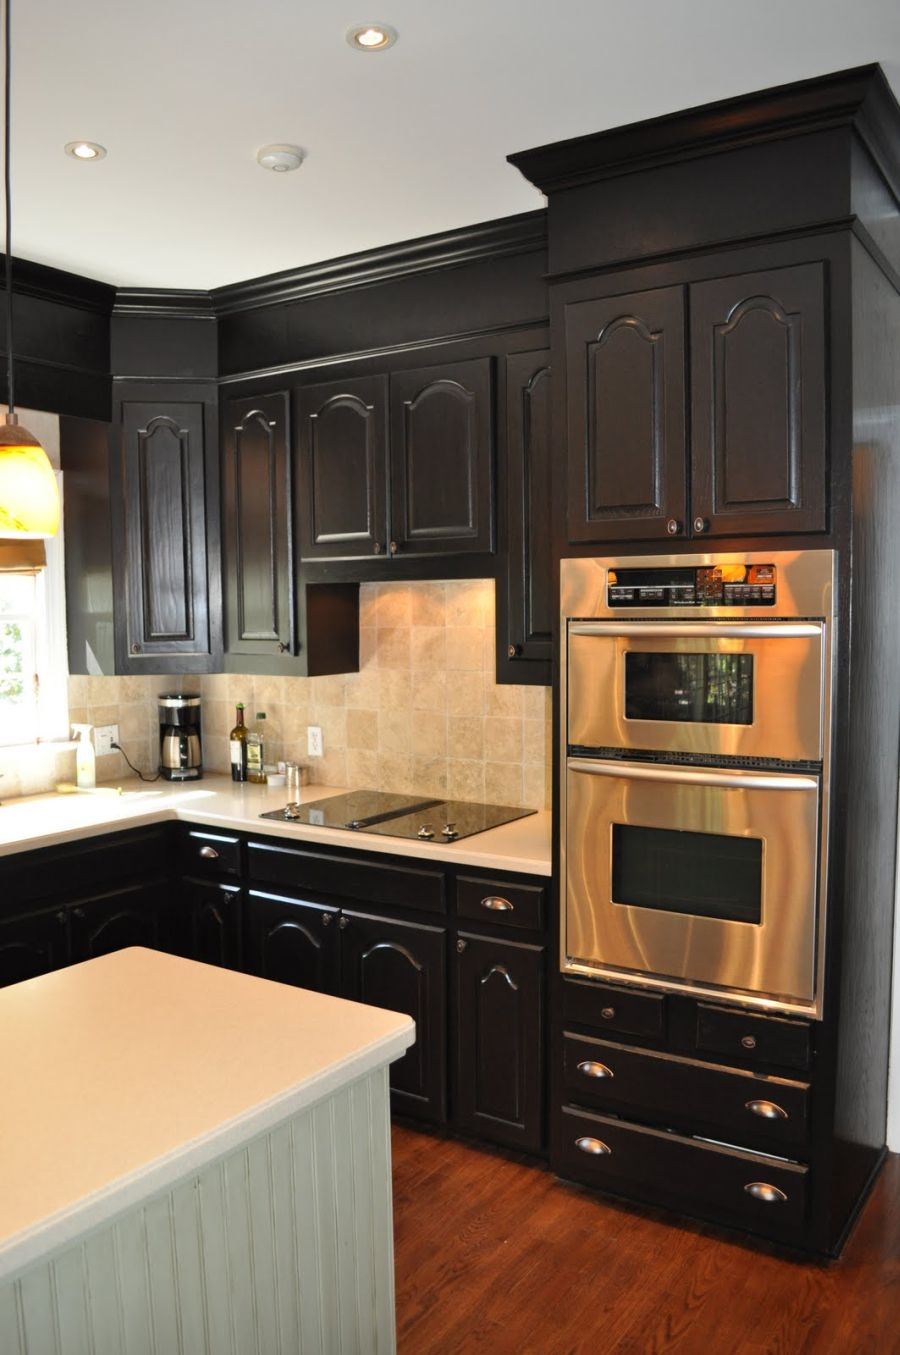 One color fits most black kitchen cabinets for Small kitchen units pictures